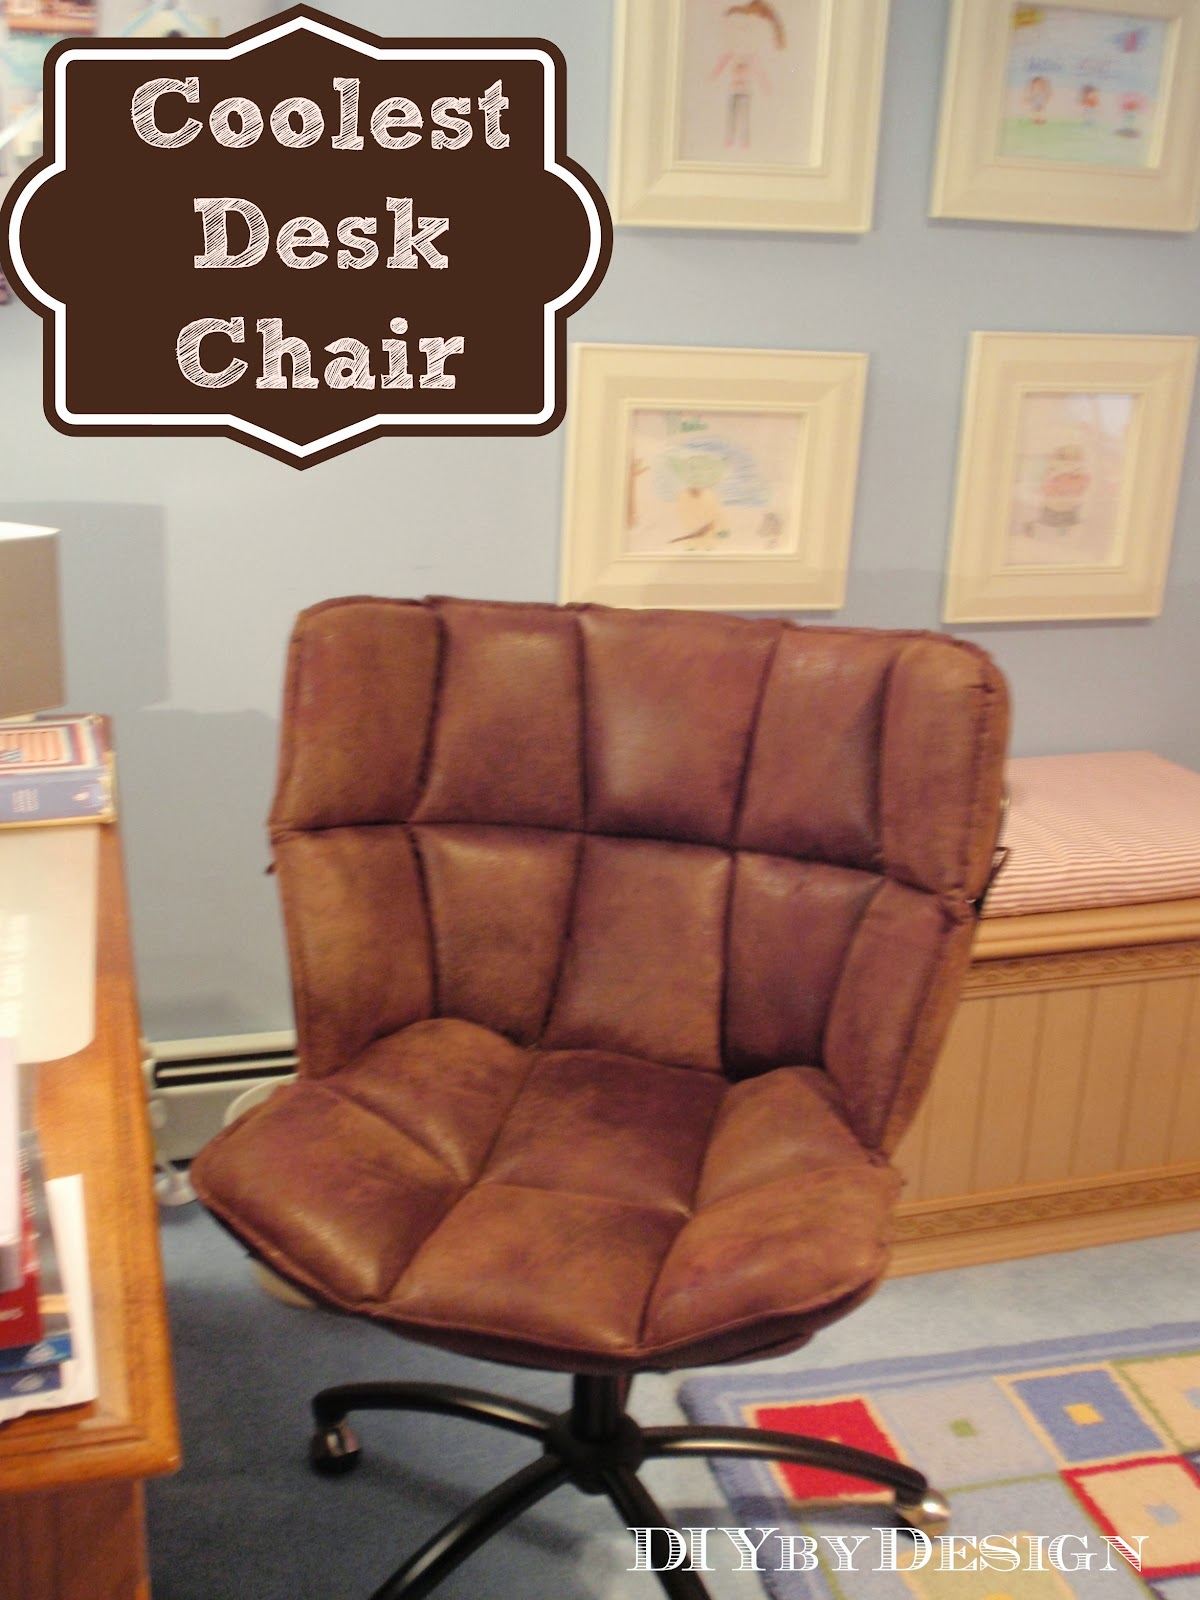 Cute Comfortable Desk Chairs Diy By Design Coolest Desk Chair Ever